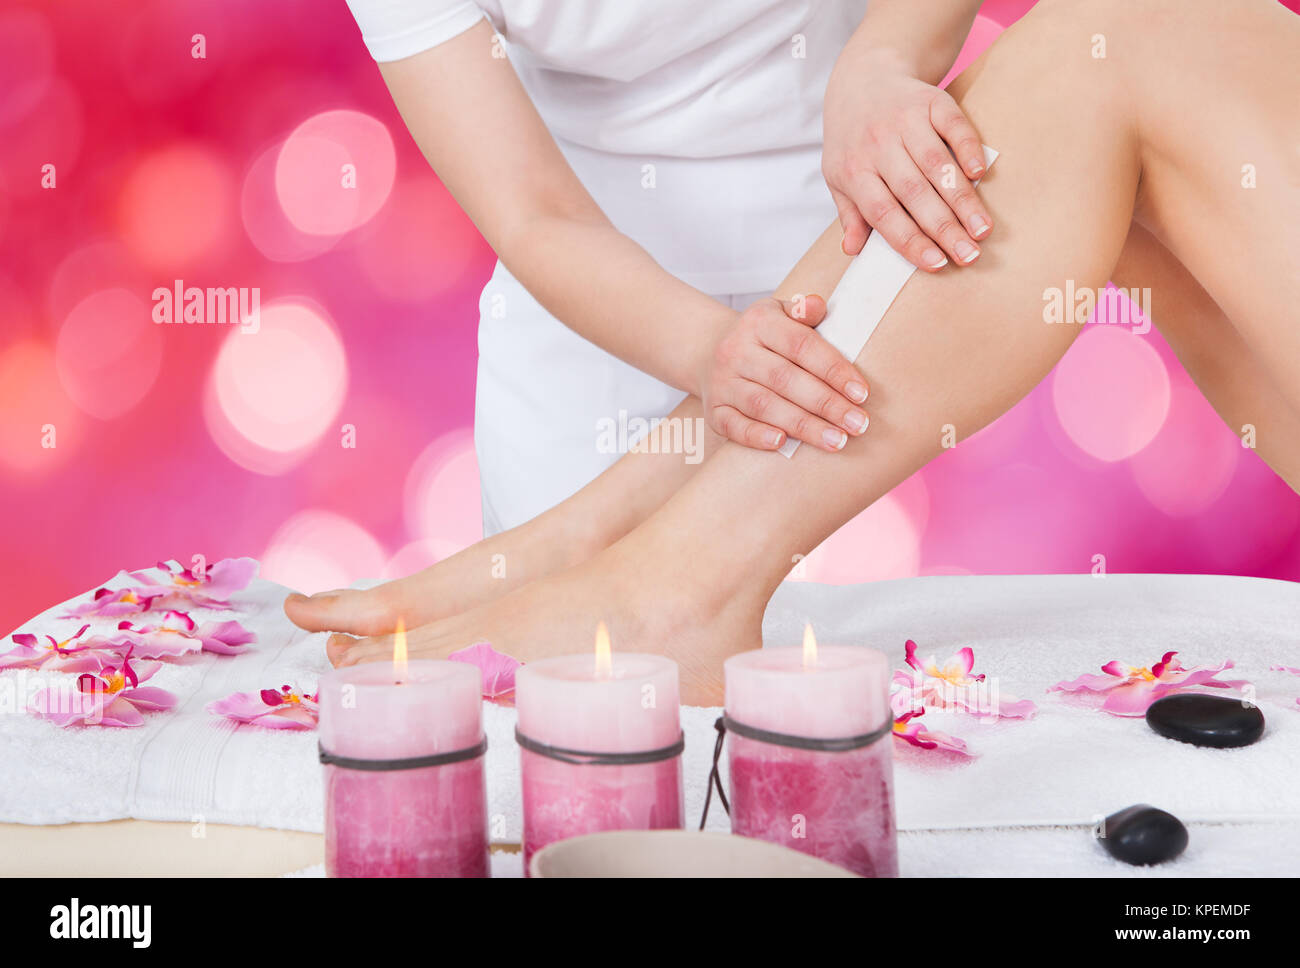 Spa Waxing Waxing Salon Stock Photos And Waxing Salon Stock Images Alamy